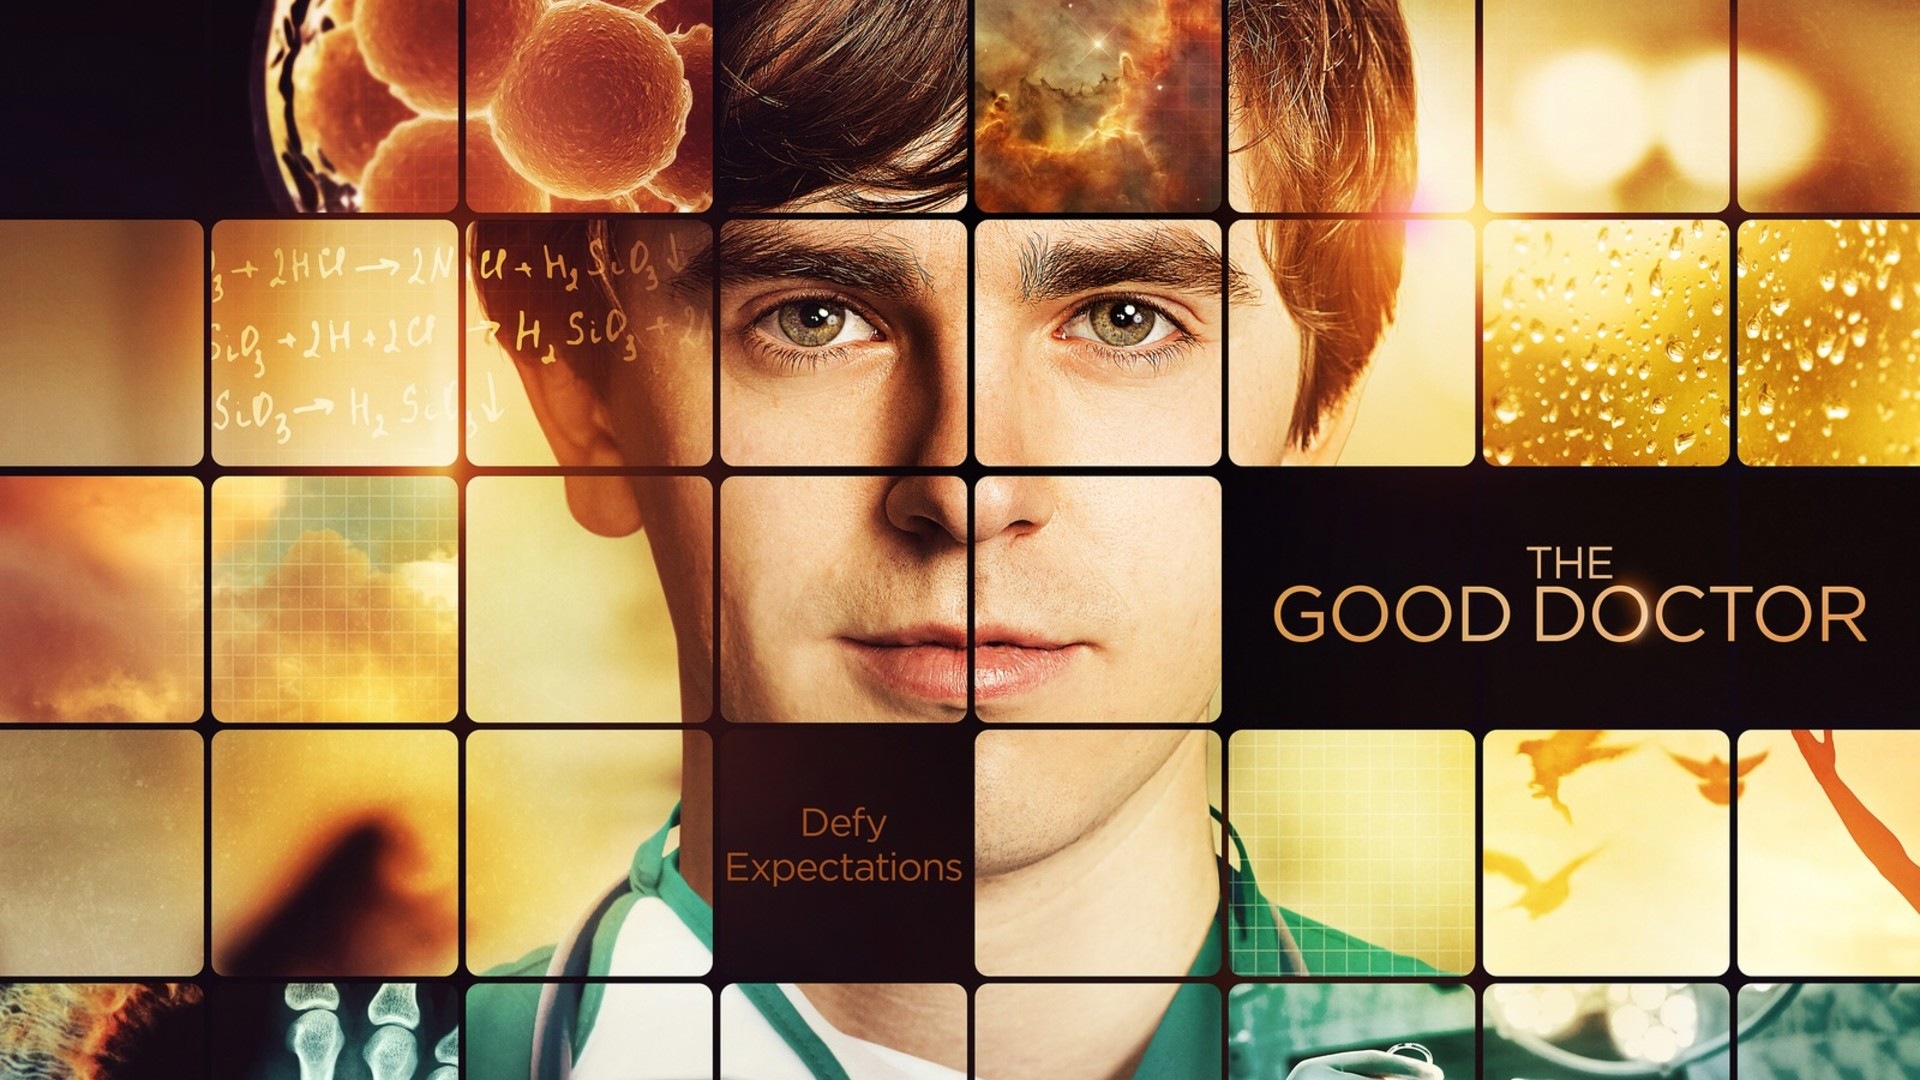 Ver The Good Doctor Online Gratis En Español